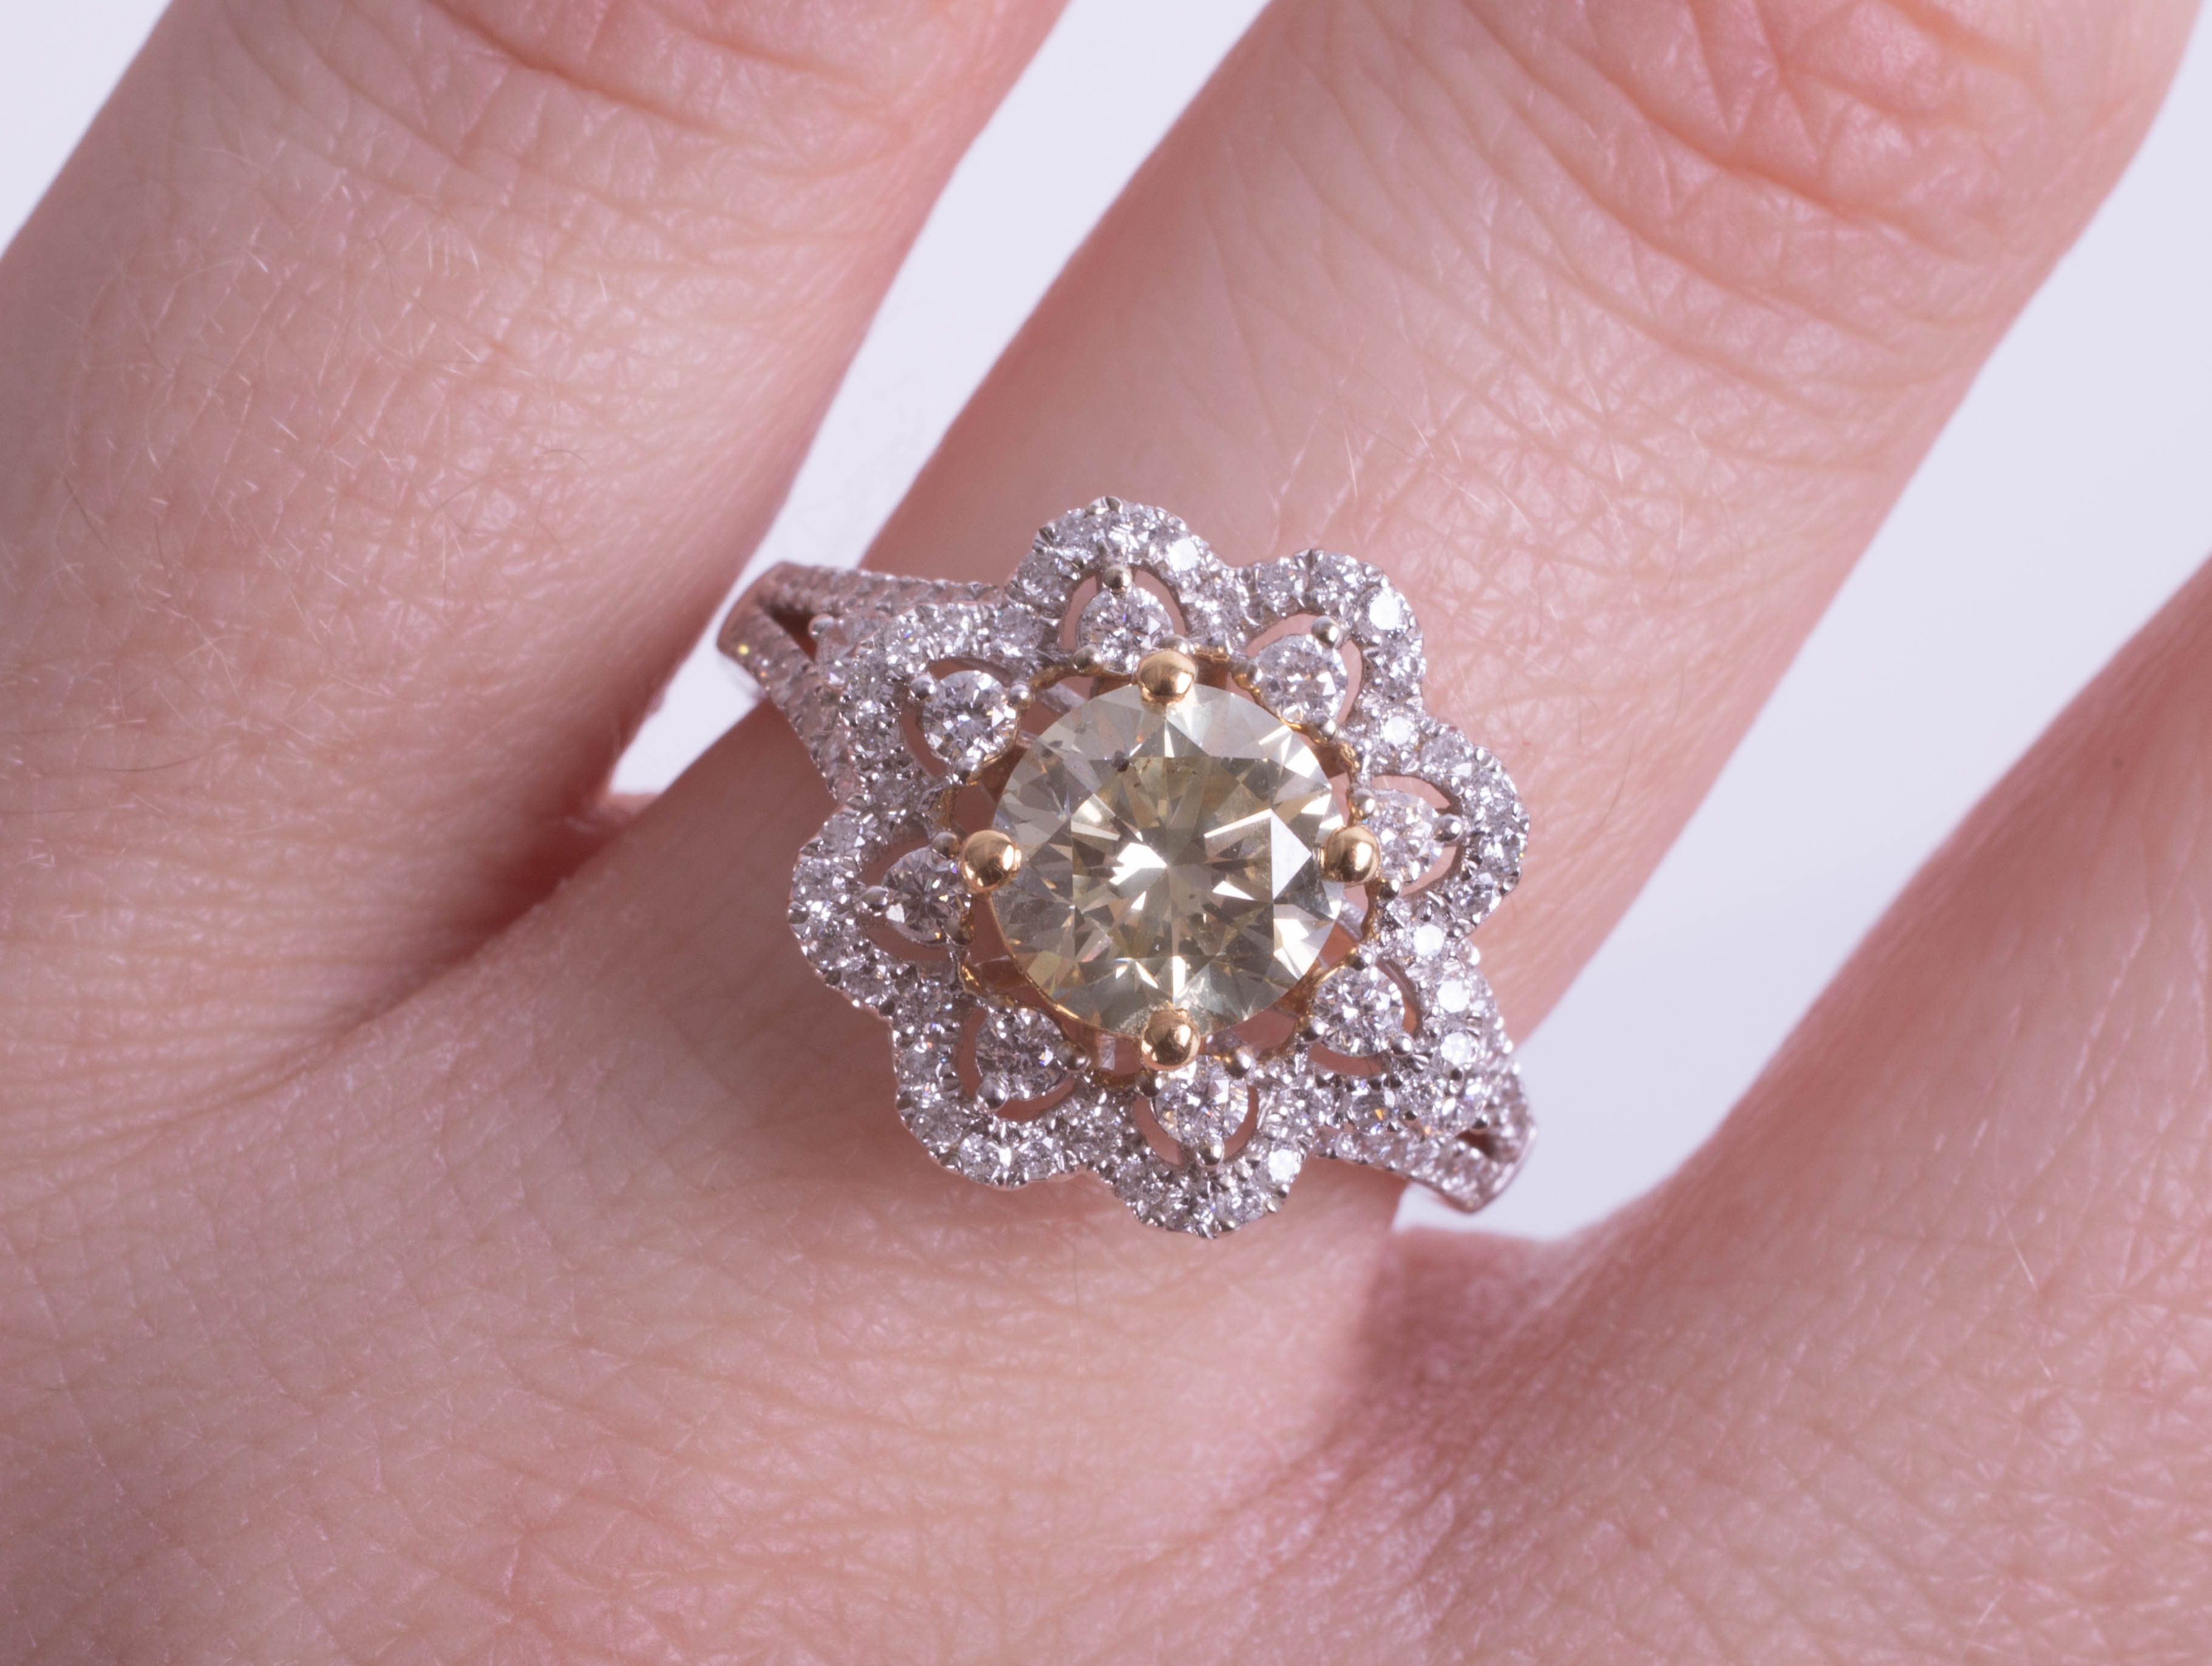 An 18ct white gold daisy-style, ornate dress ring set with a central fancy RBC diamond (1.36ct) - Image 2 of 2